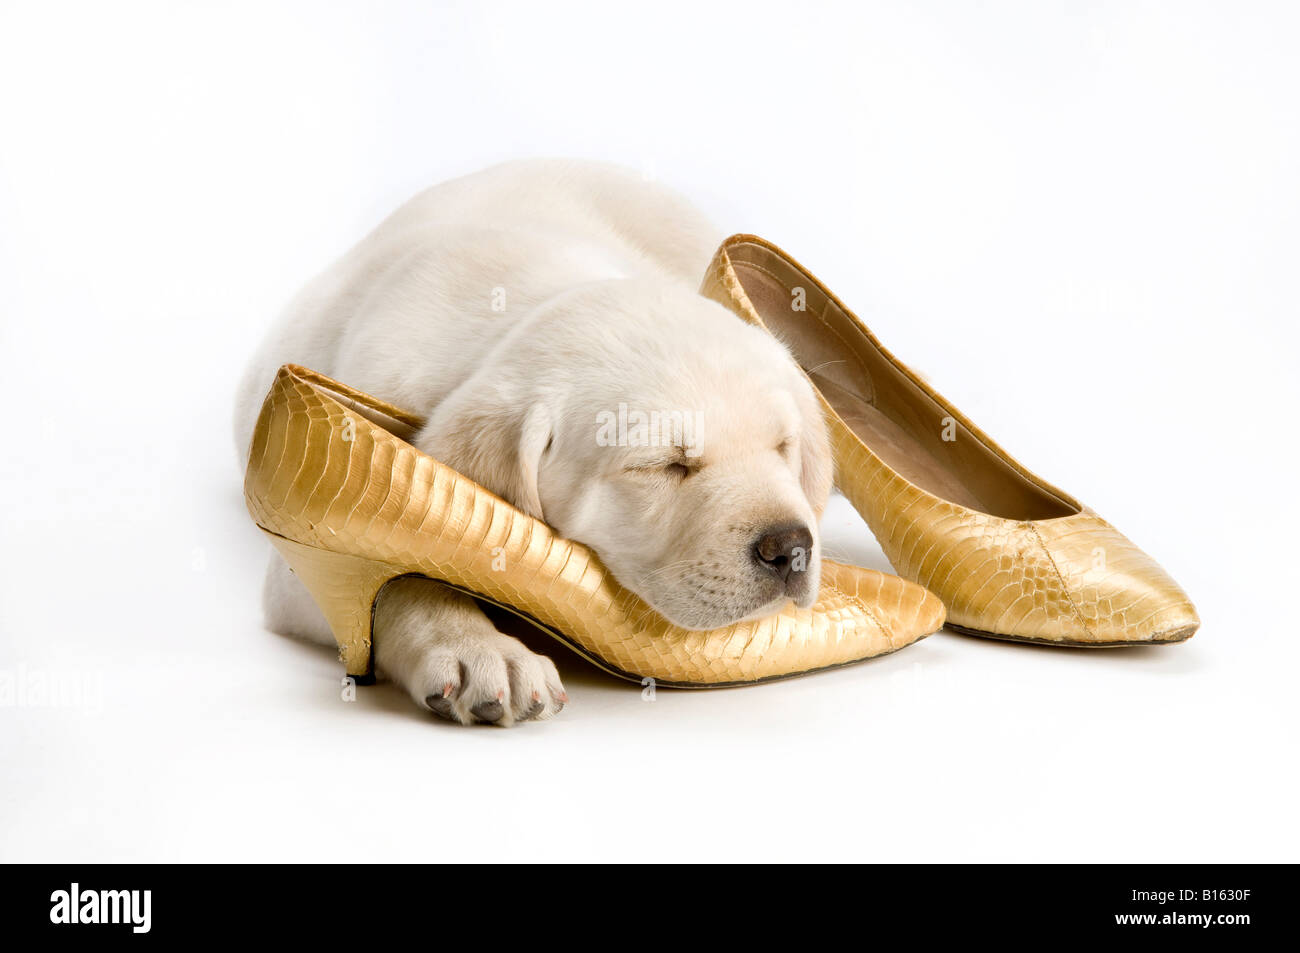 Labrador puppy sleeping on womens shoes - Stock Image